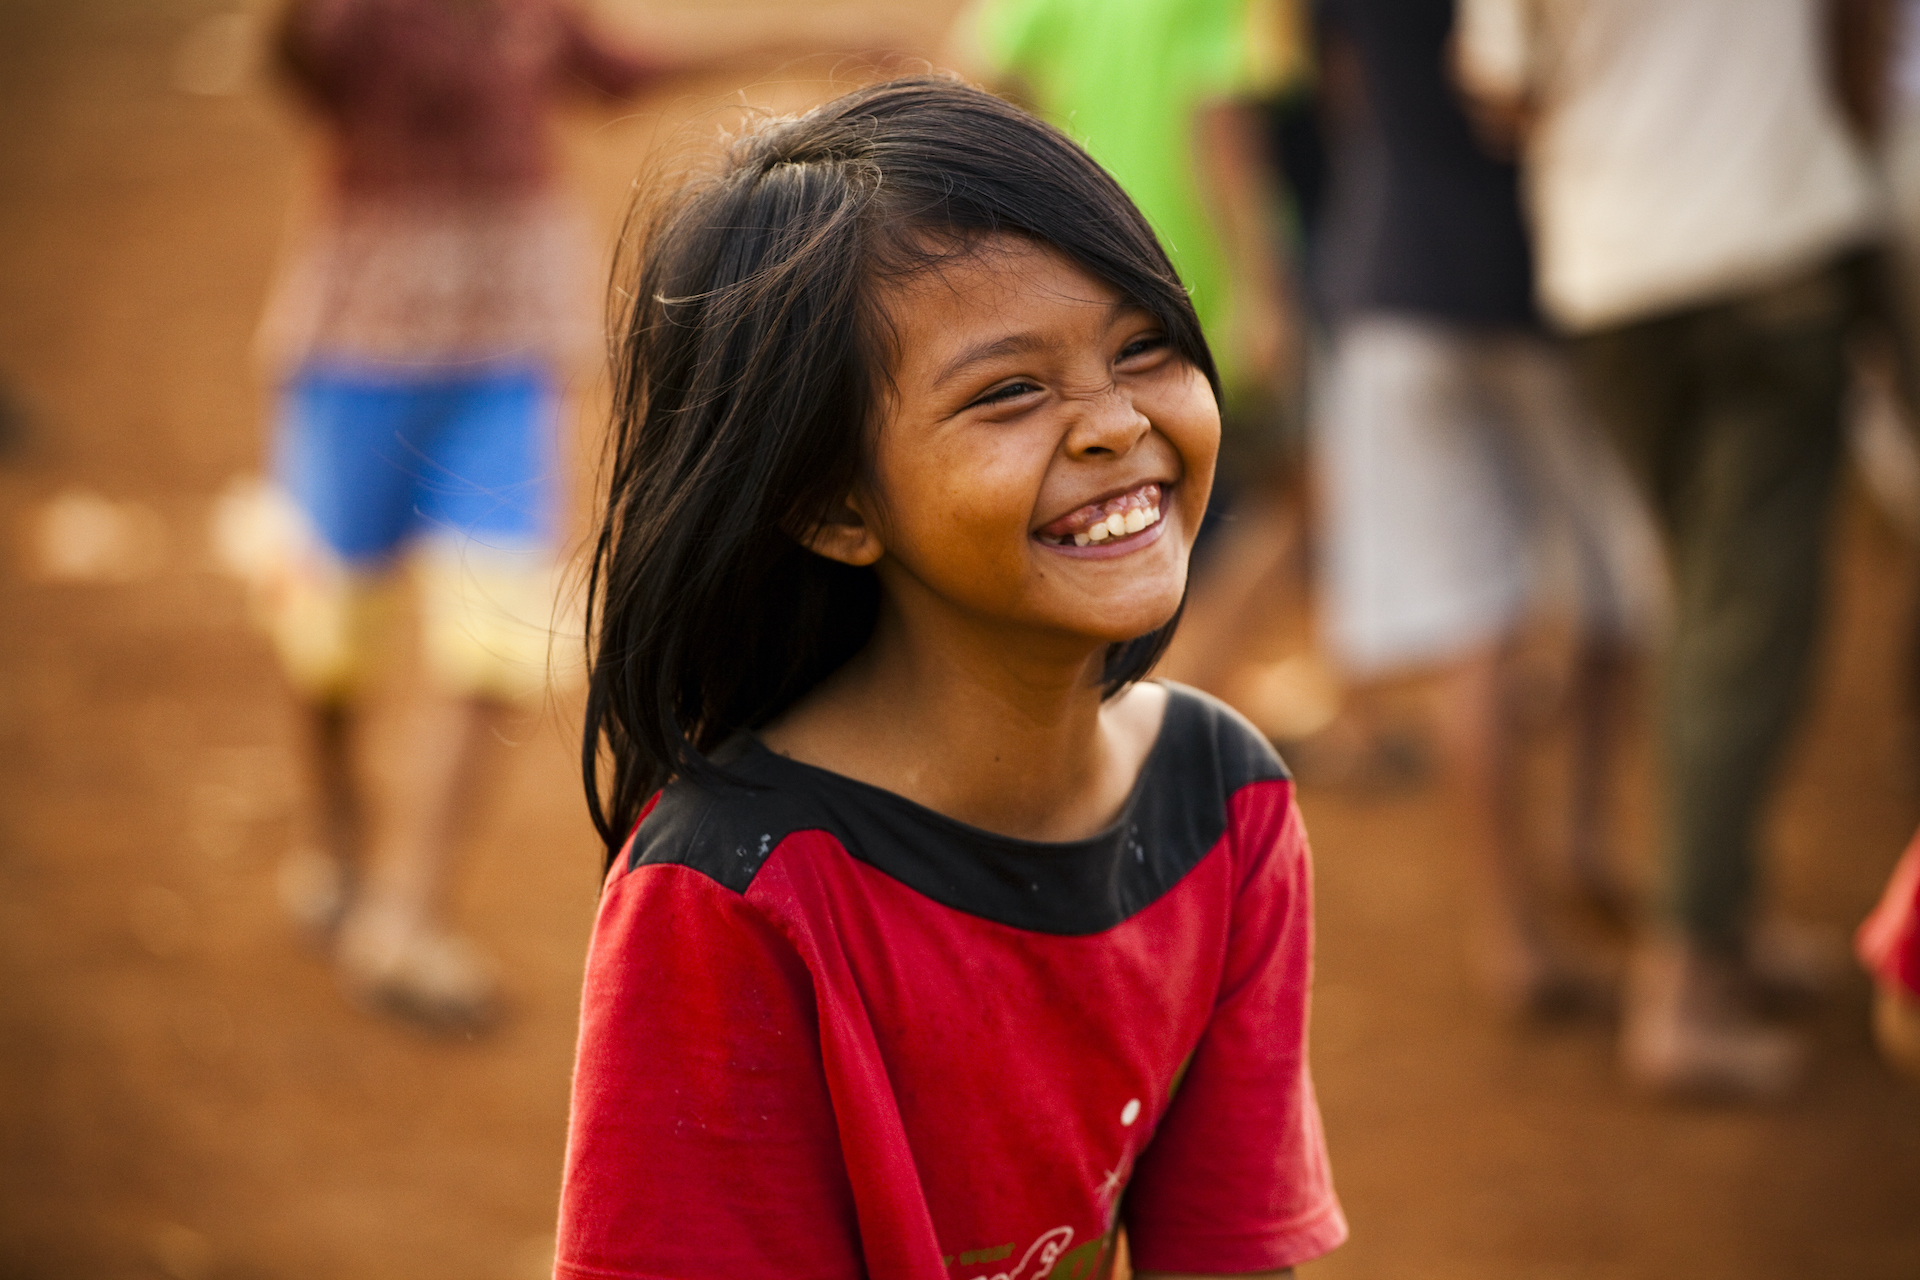 A young girl in a red shirt, laughing.